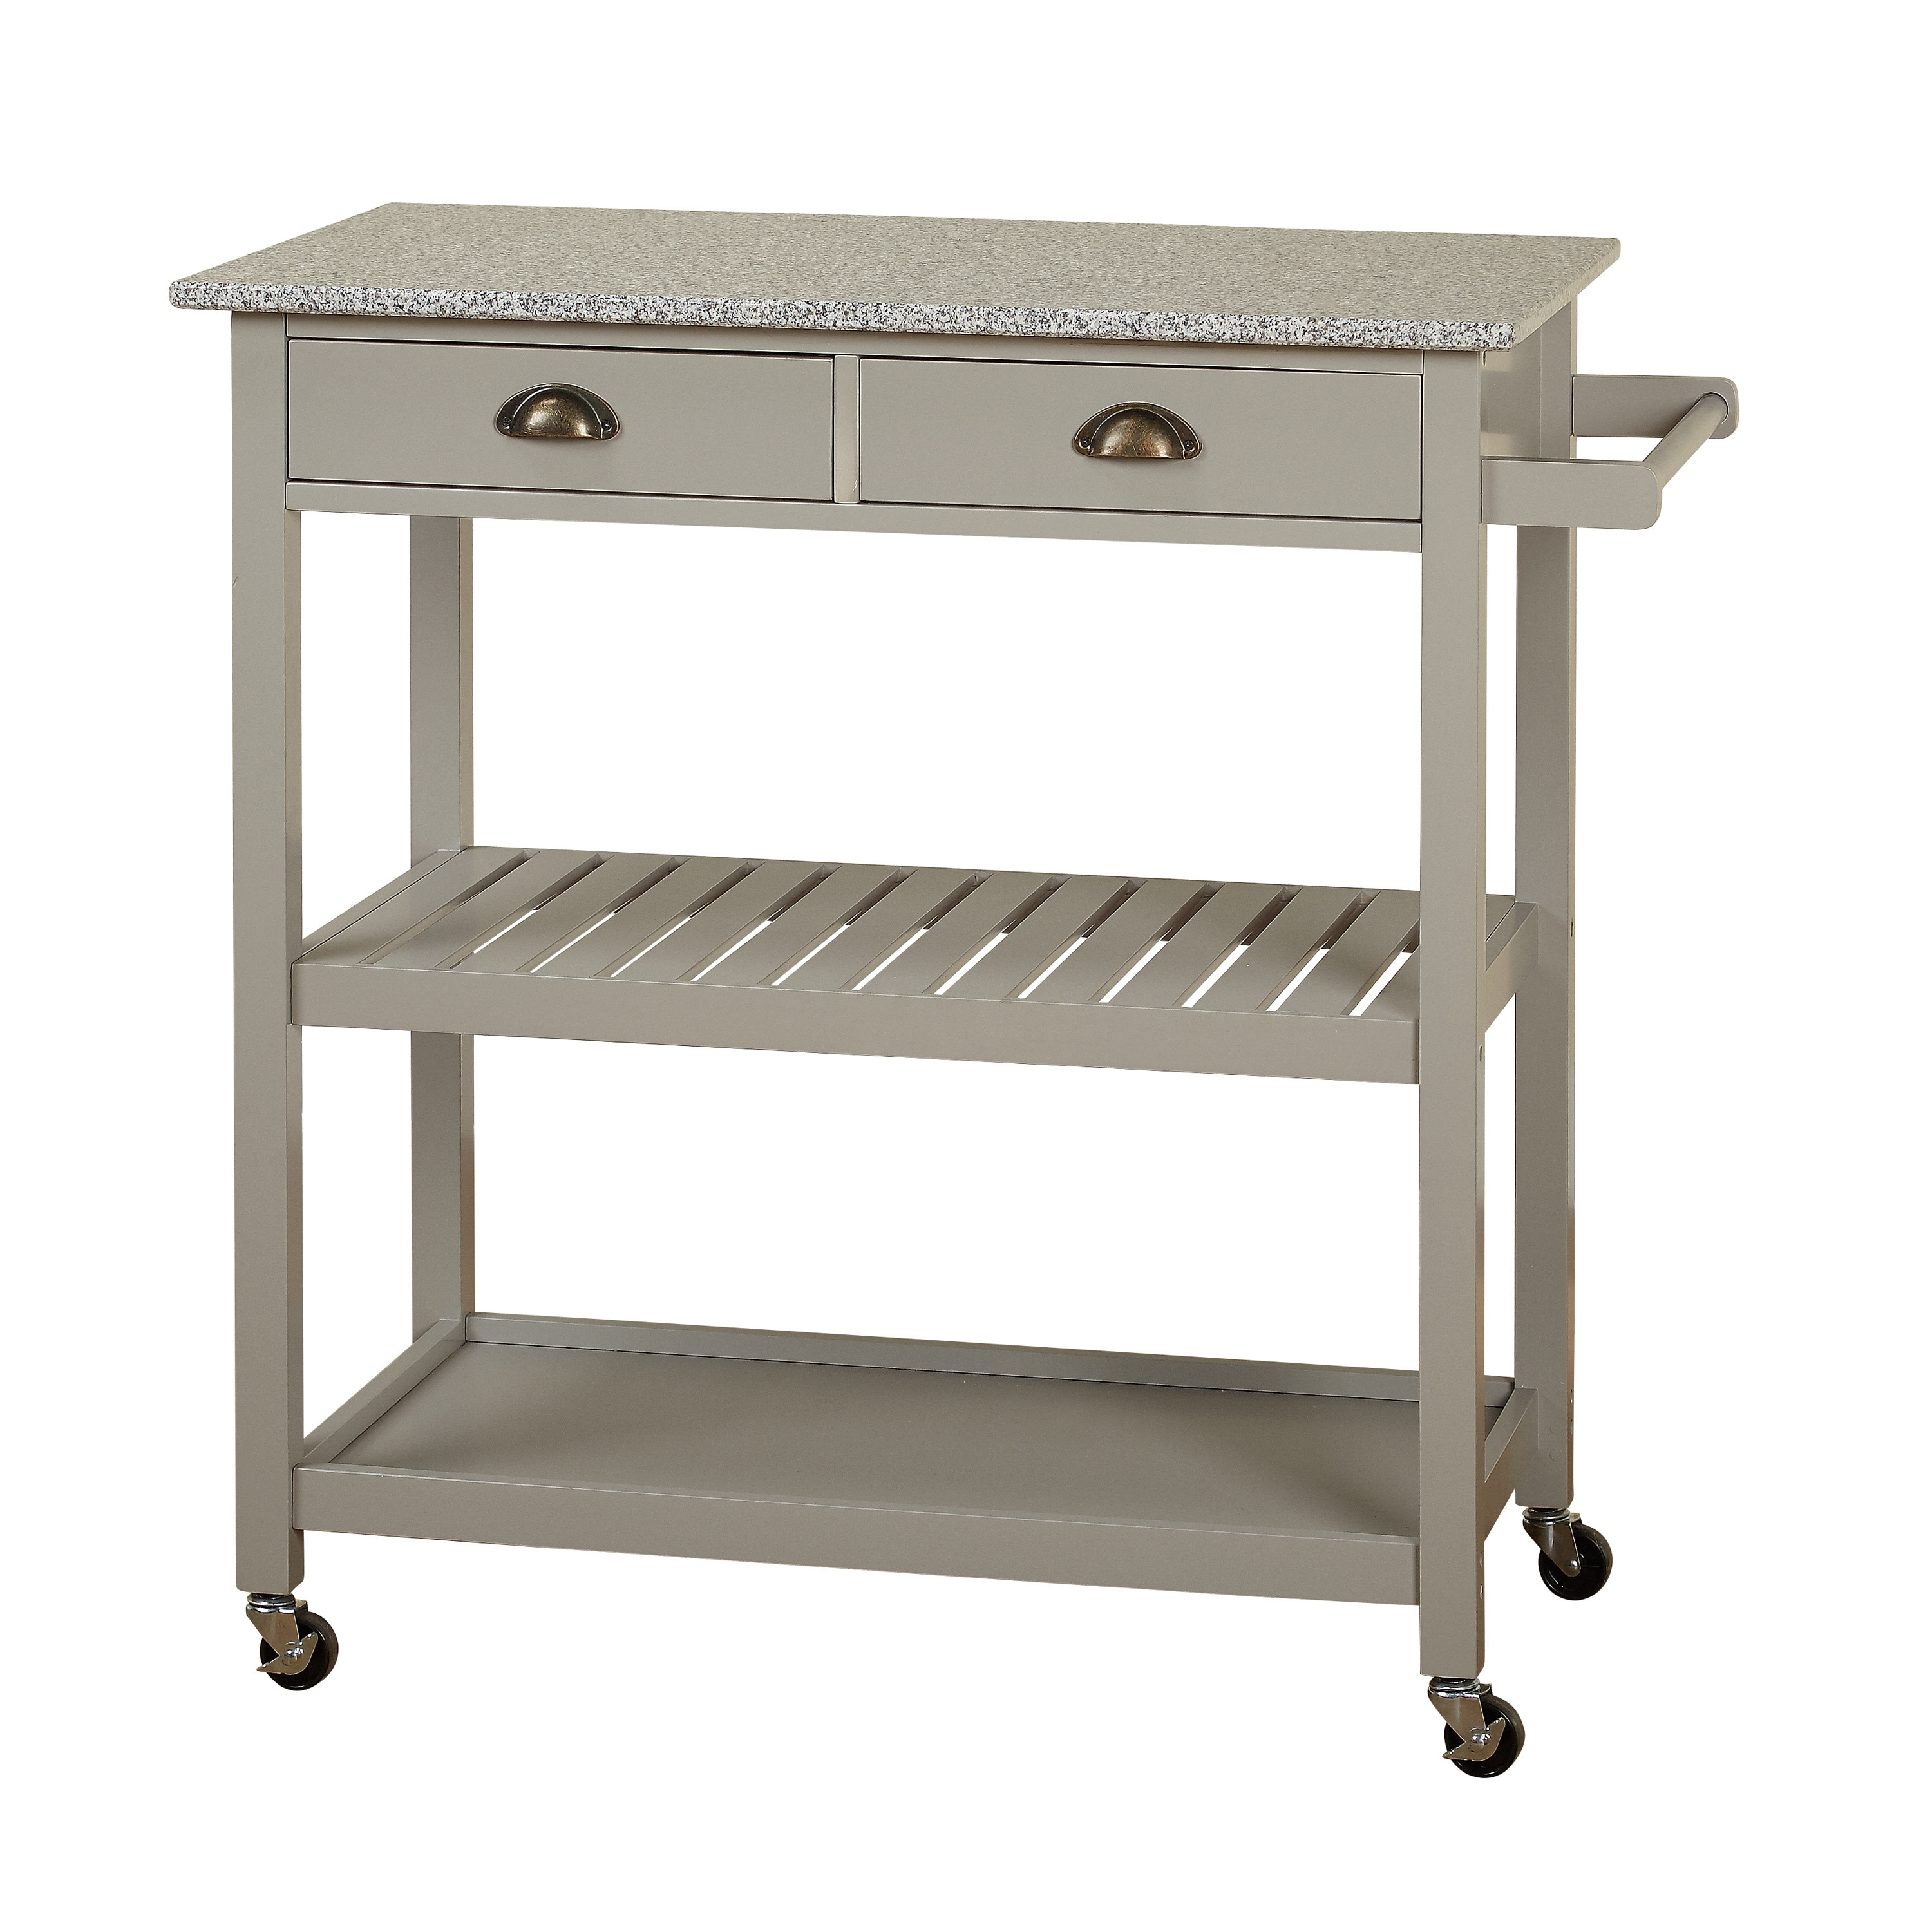 Shop simple living oregon 2 drawer rolling kitchen island on sale free shipping today overstock com 14545425